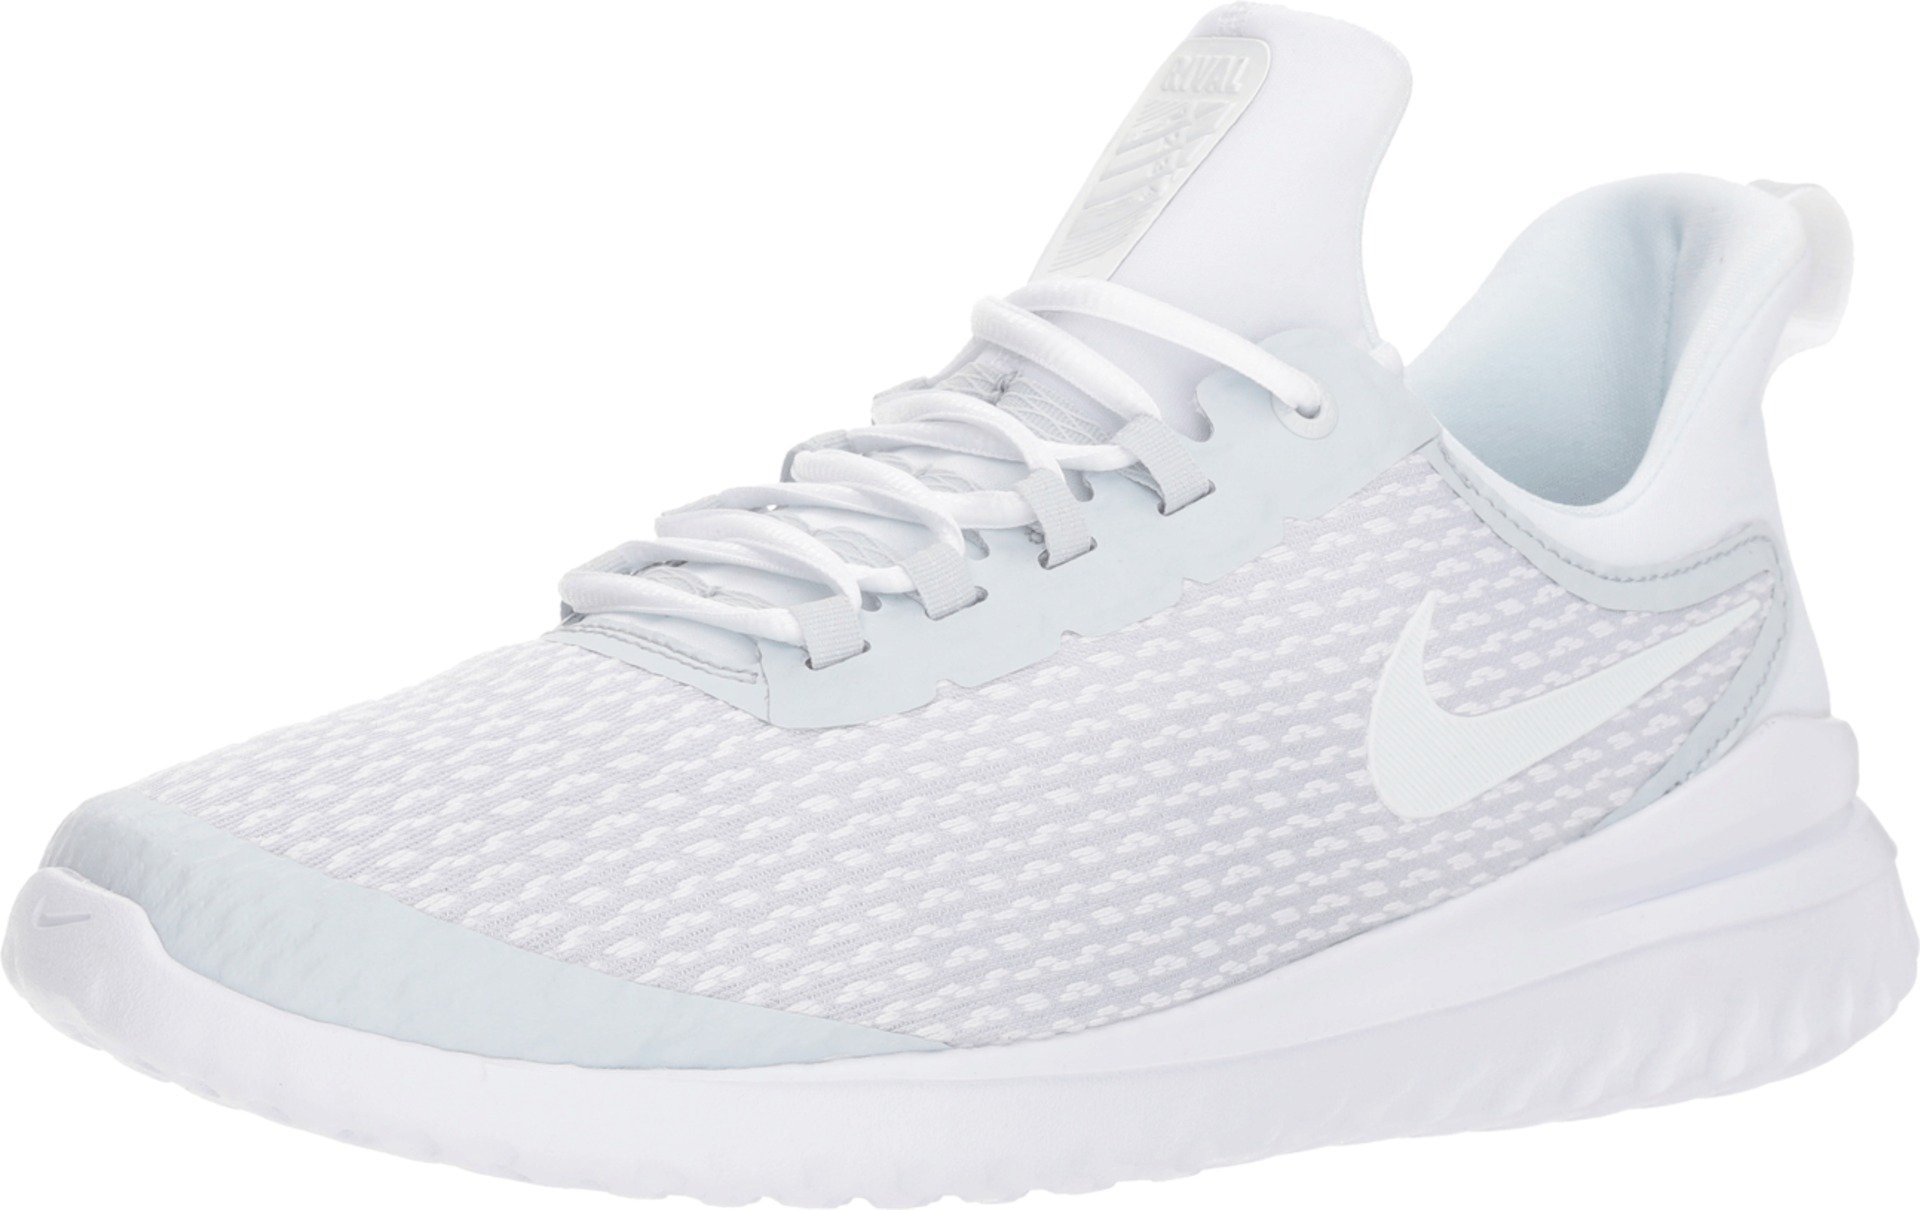 Renew Rival Running Shoe Pure Platinum